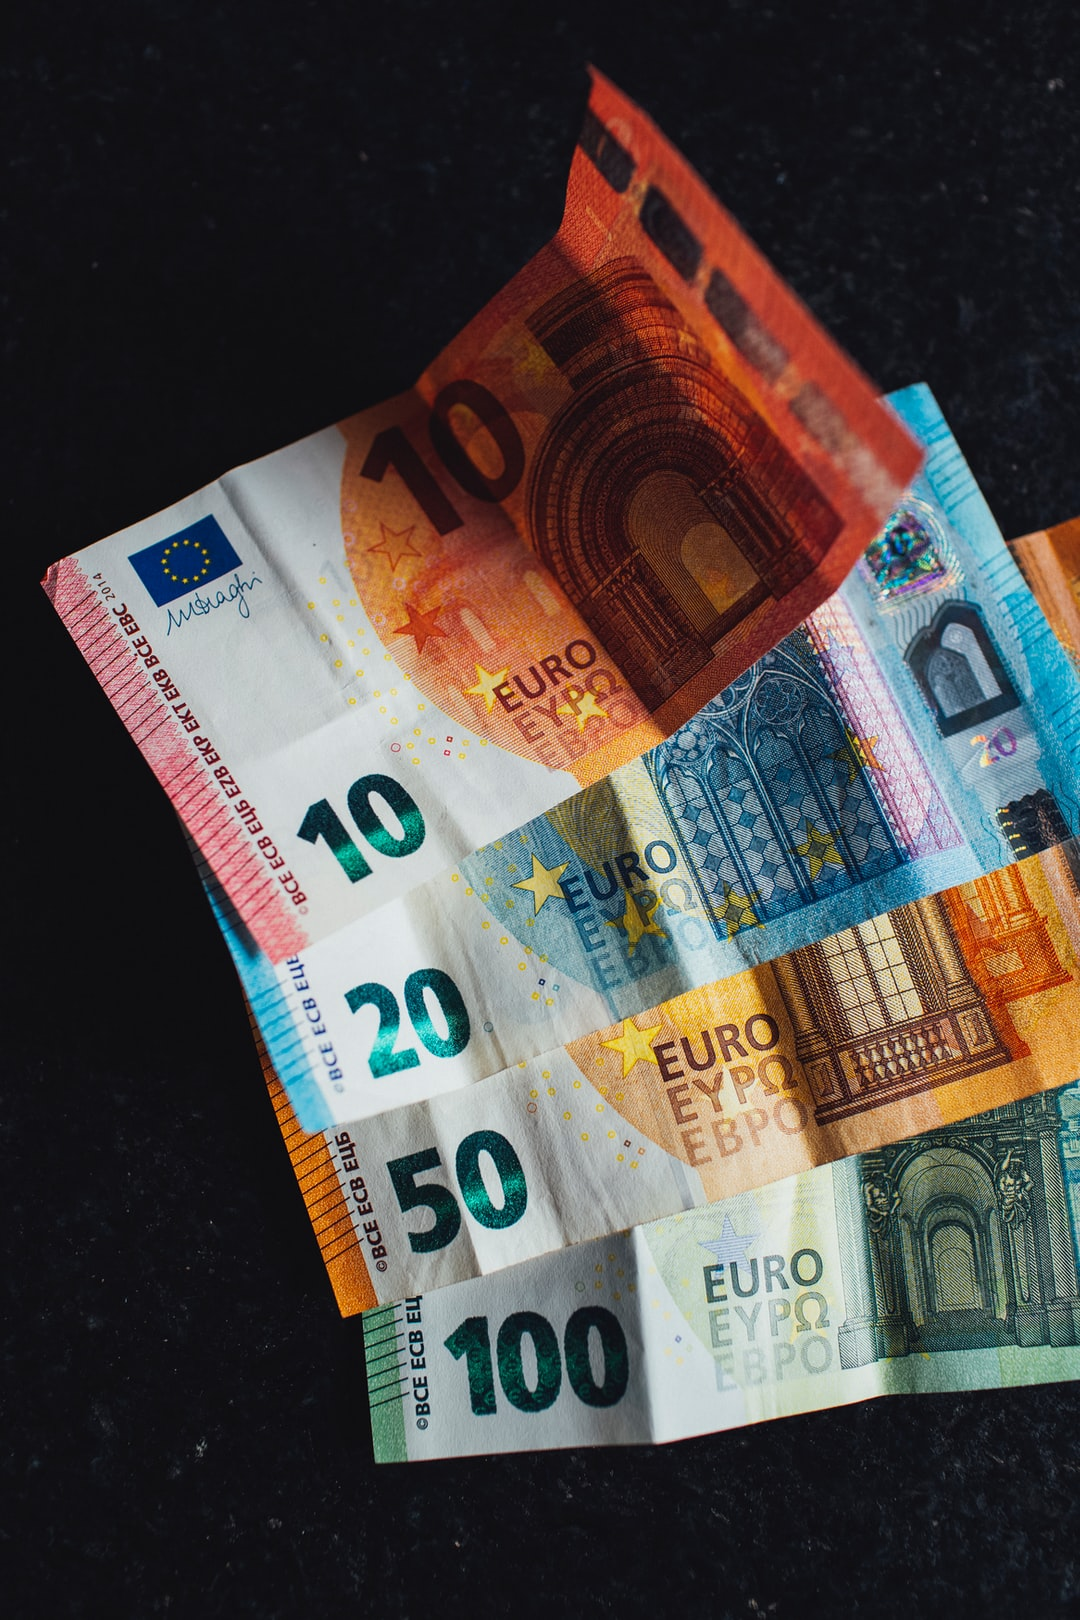 A lot of cash EURO banknote cash money € 10,- € 20,- € 50,- and € 100,-